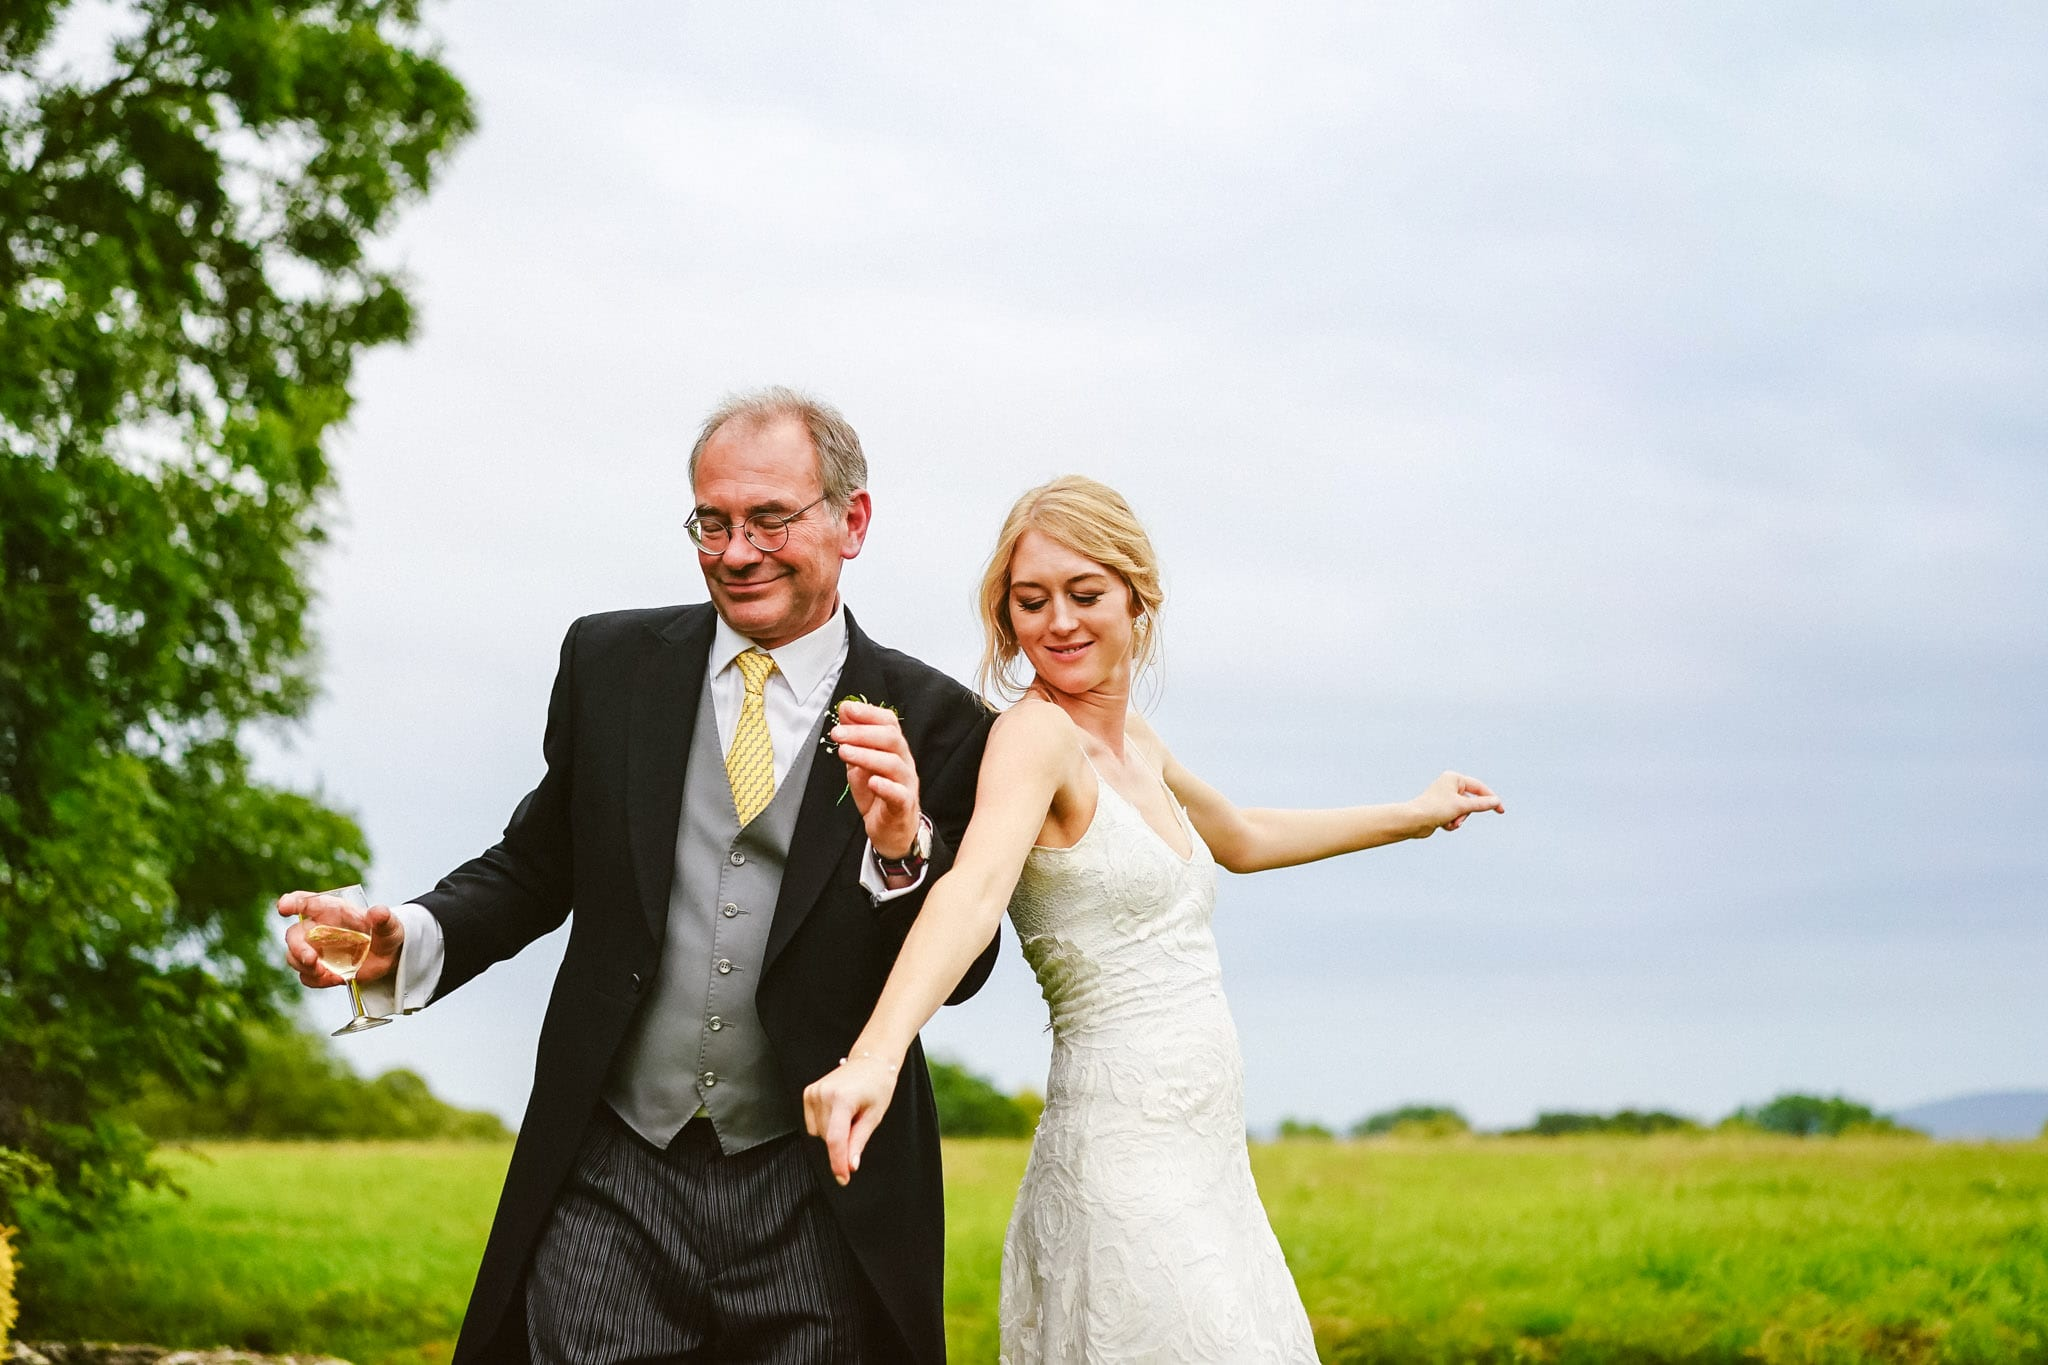 Buckinghamshire wedding photographer and Bride and father dancing outside at a Long Crendon wedding in Buckinghamshire